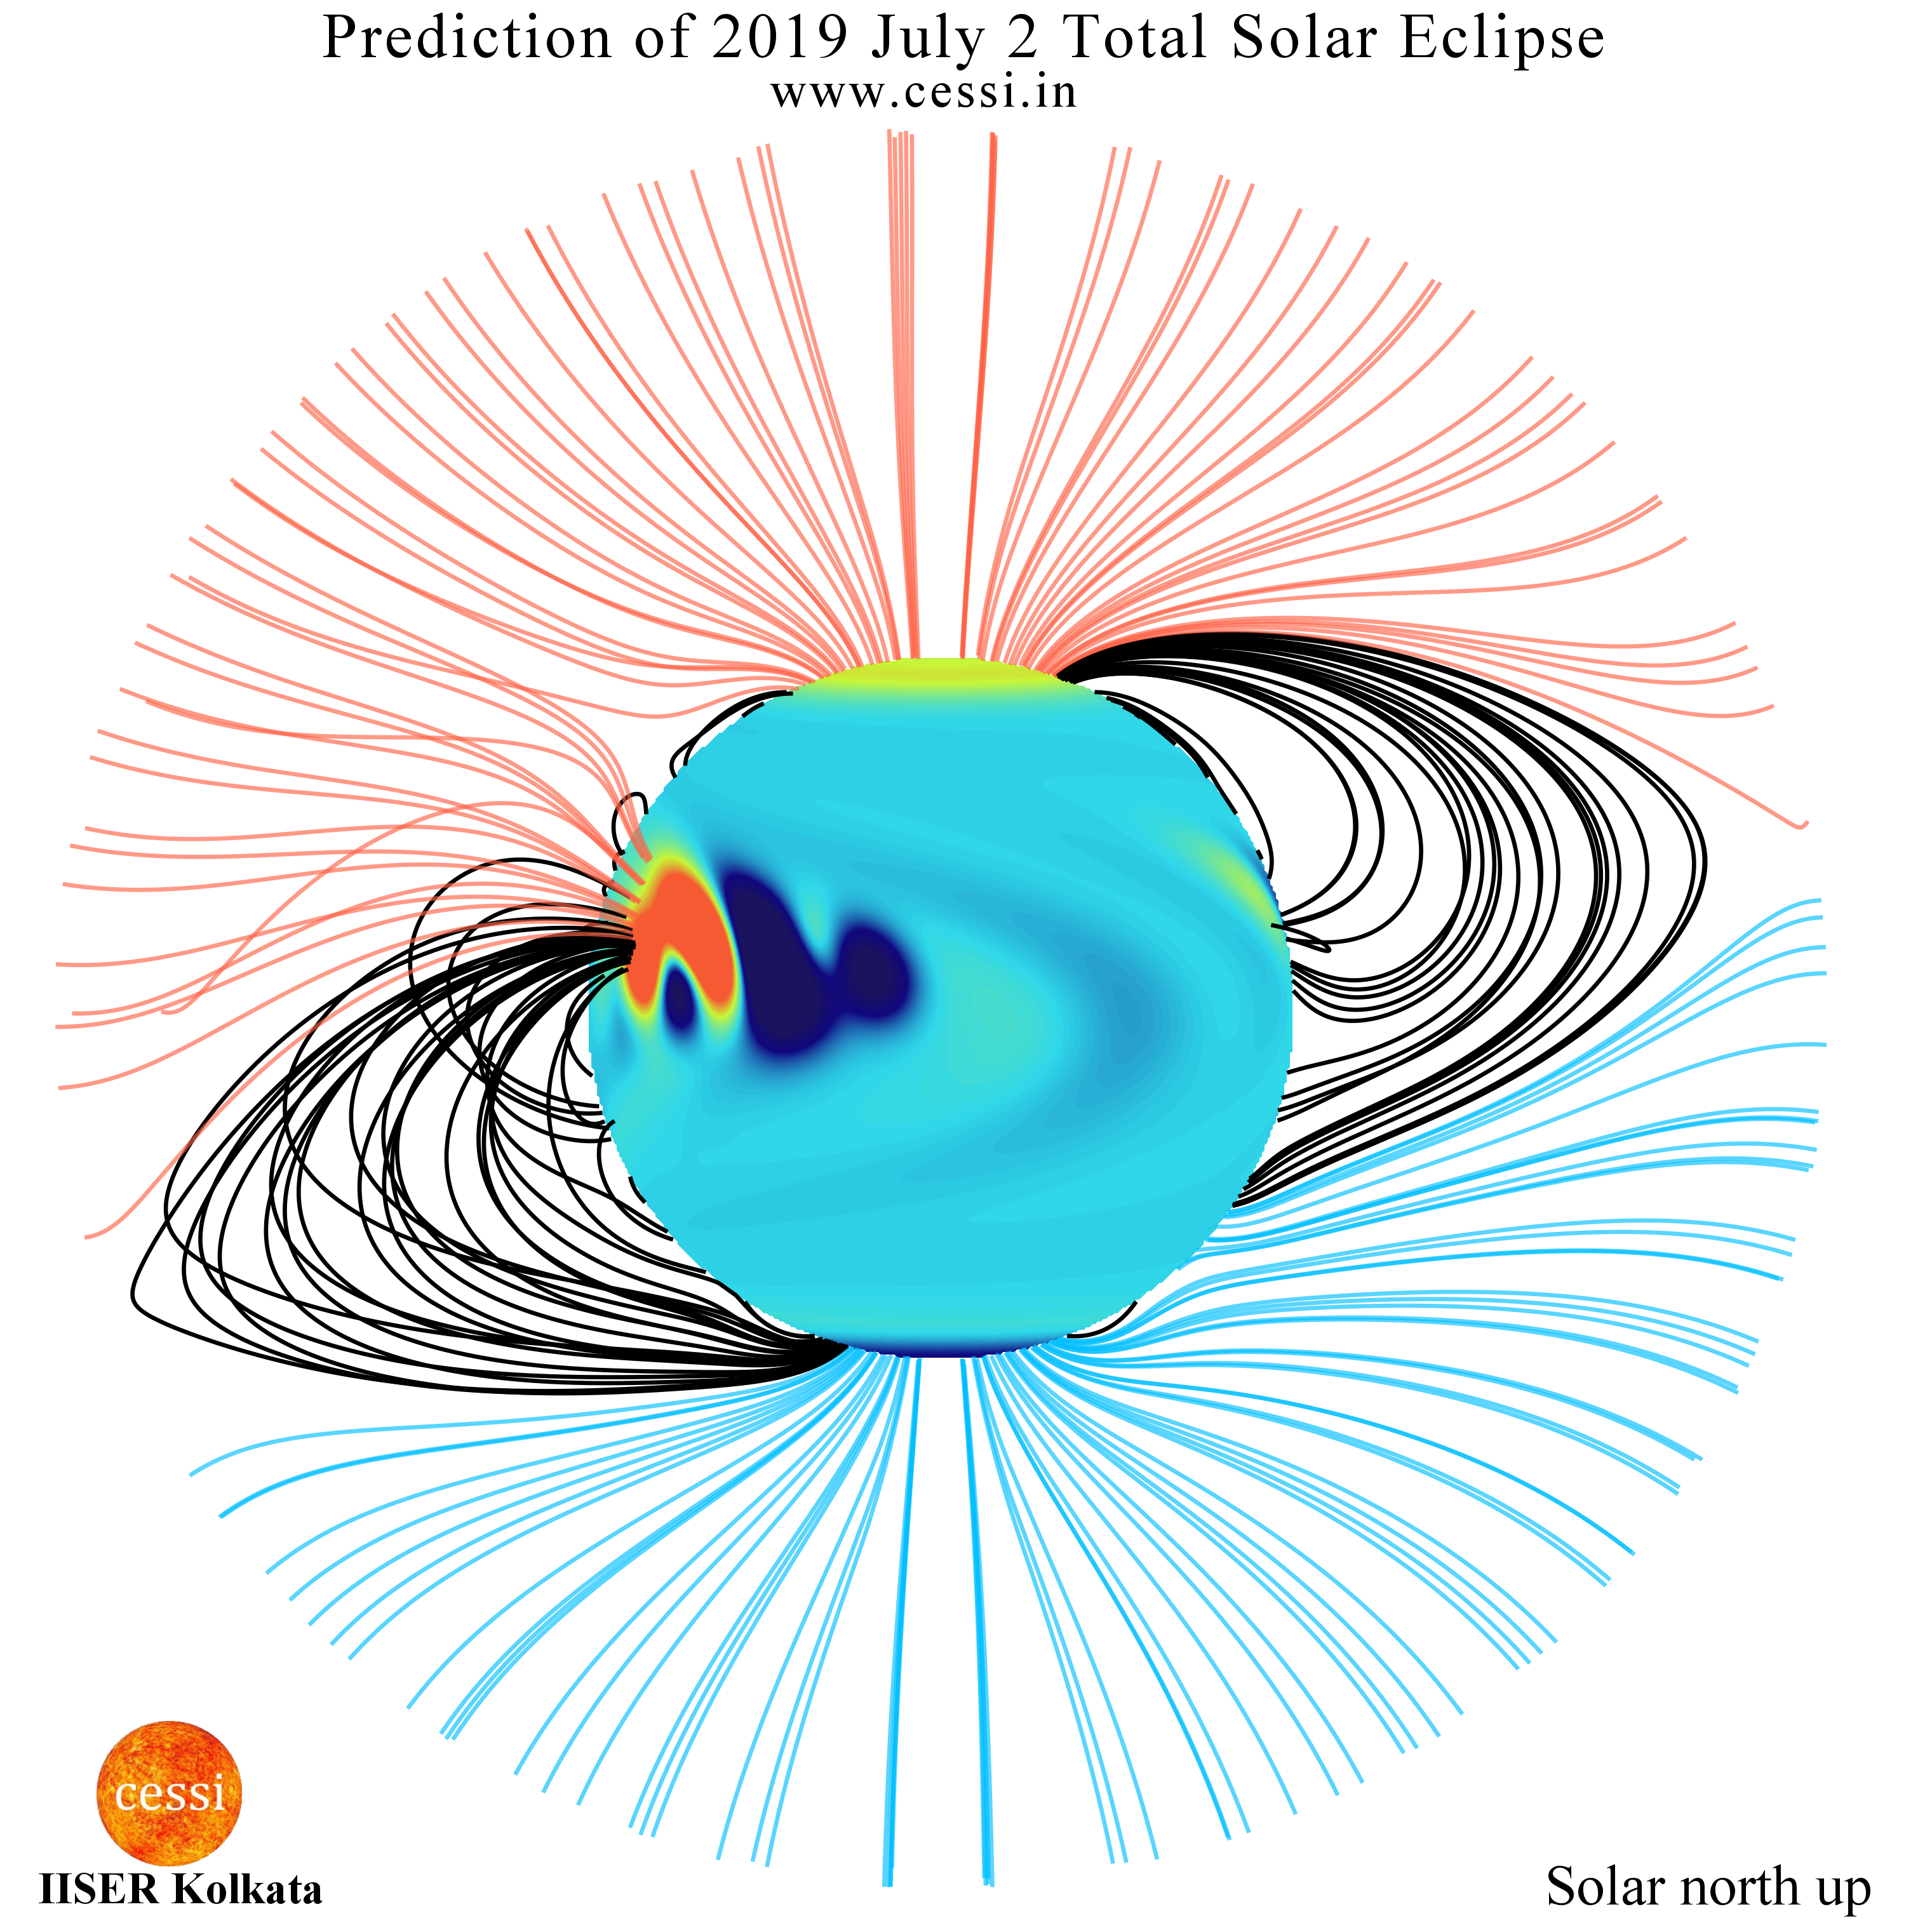 CESSI Prediction of South American Total Solar Eclipse 2019